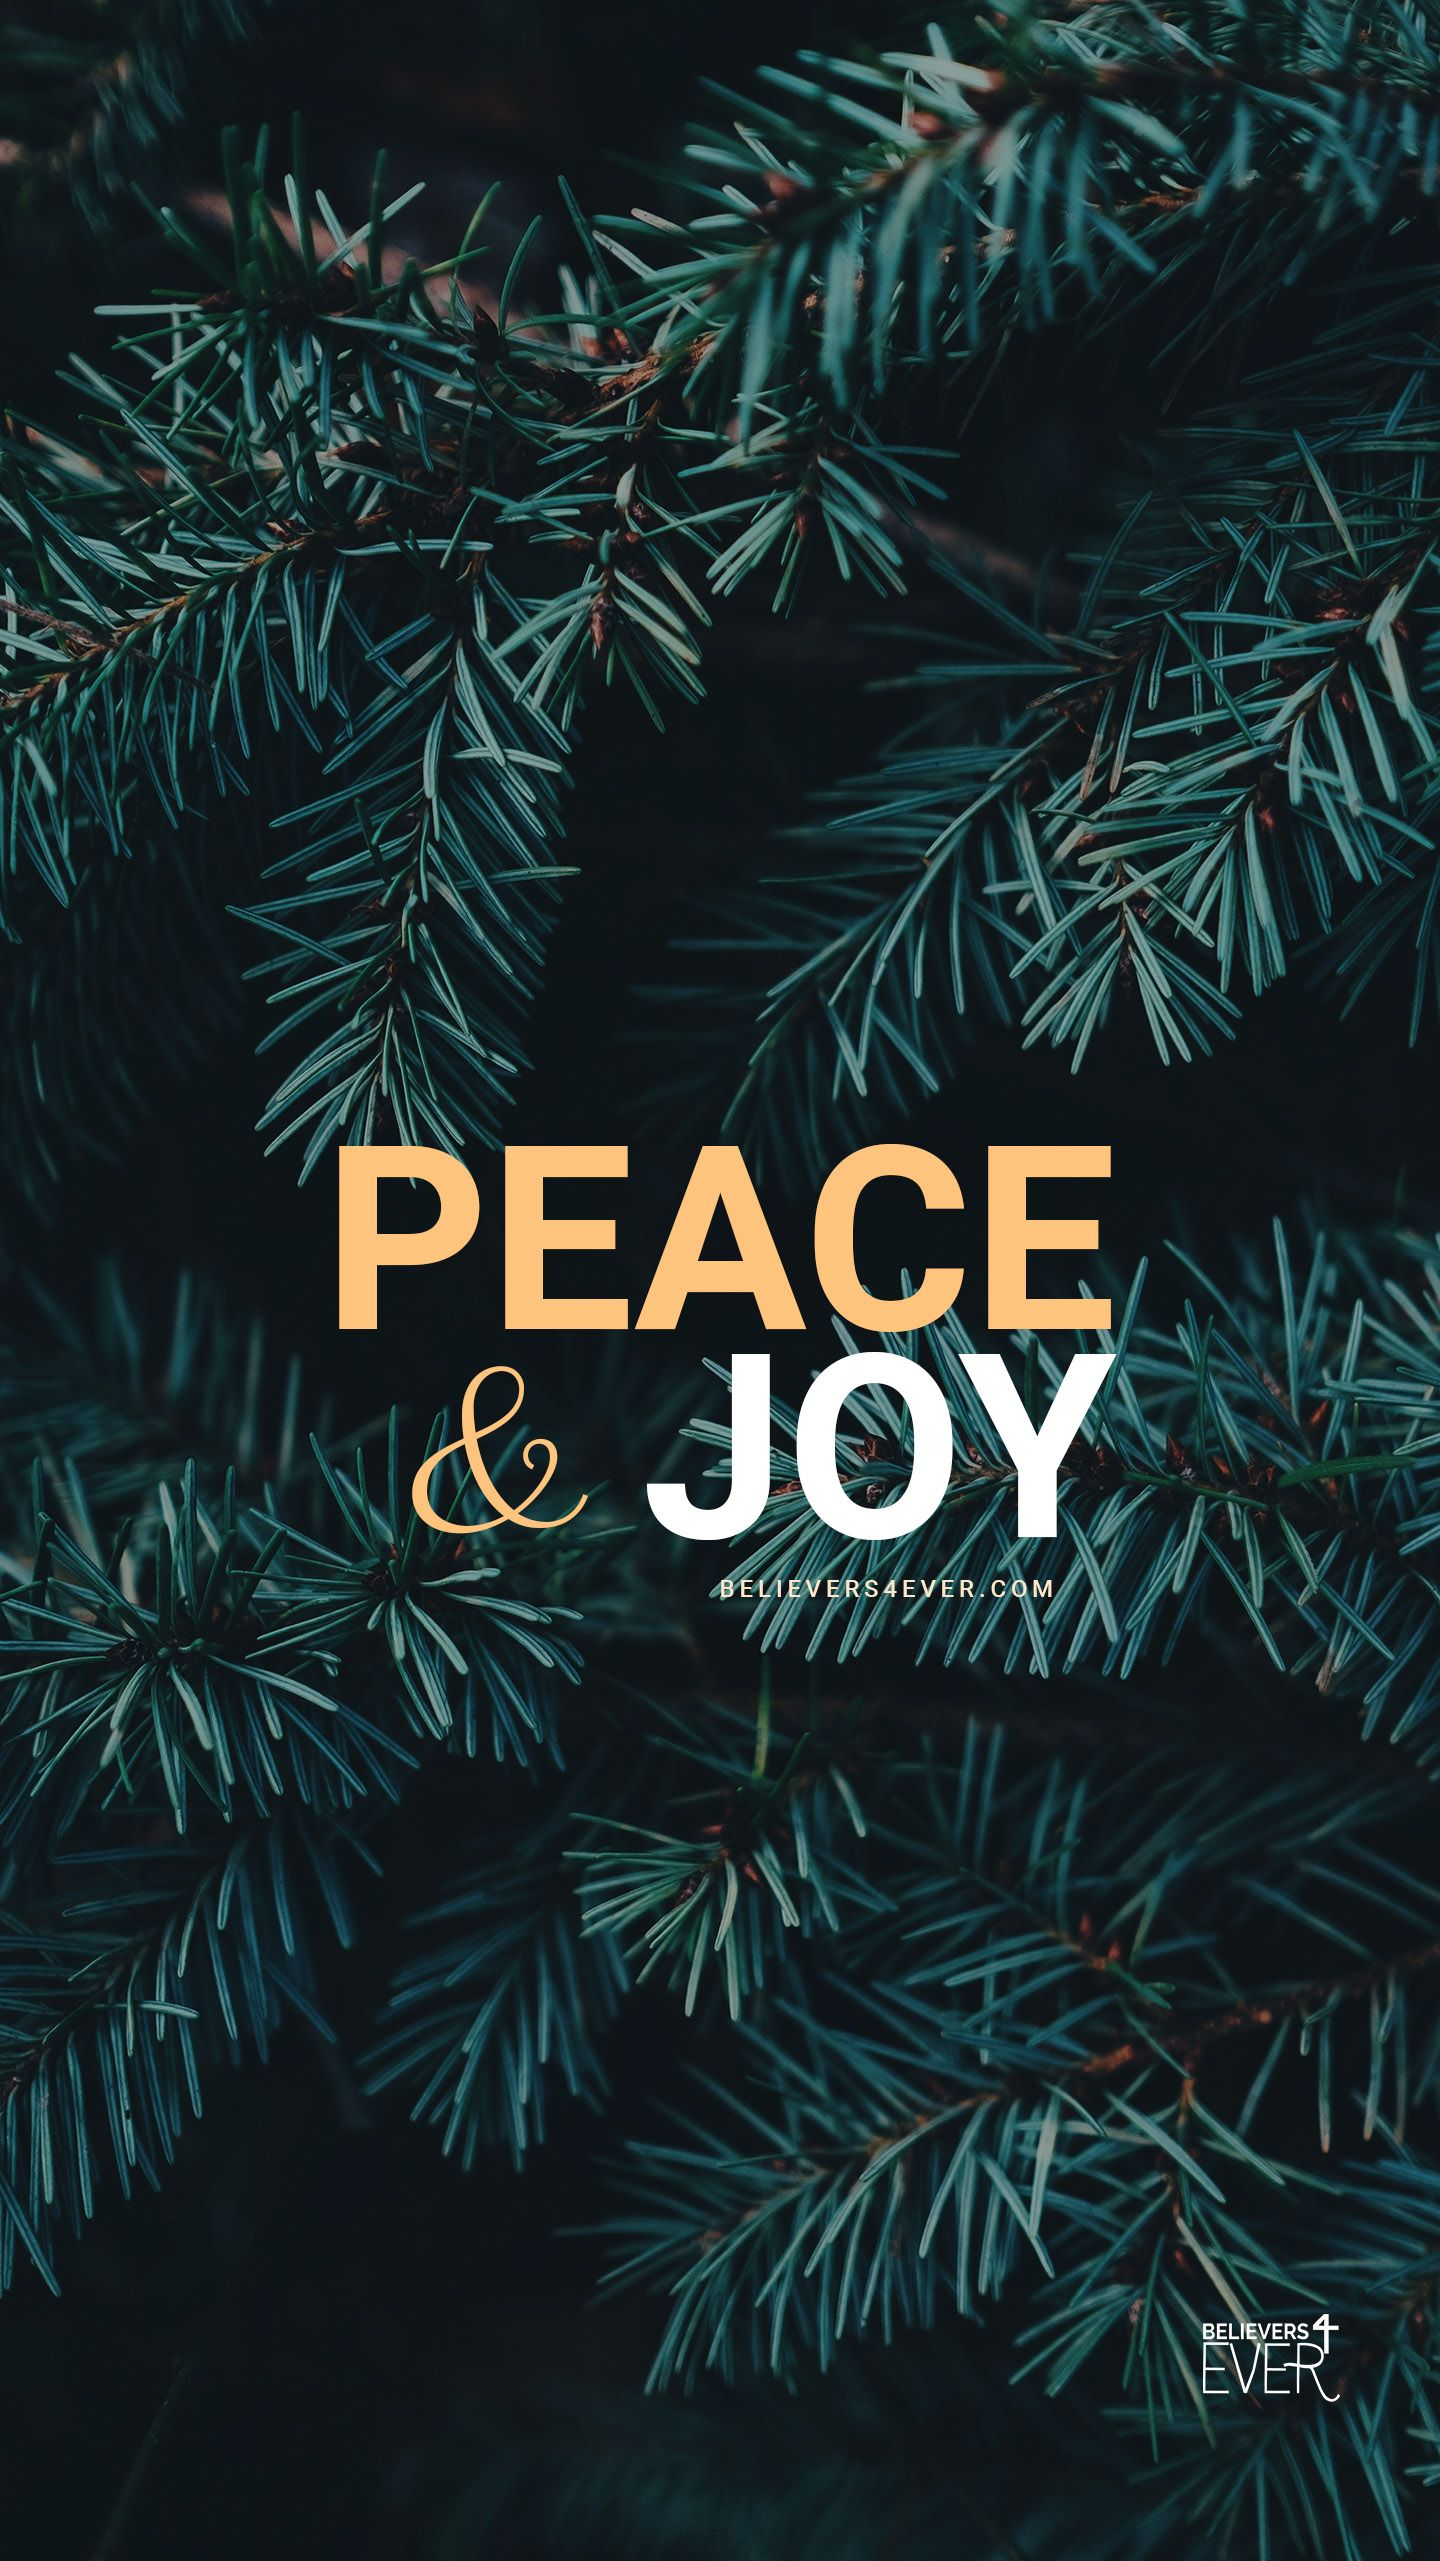 Peace and Joy   Believers4evercom Wallpaper iphone christmas 1440x2561